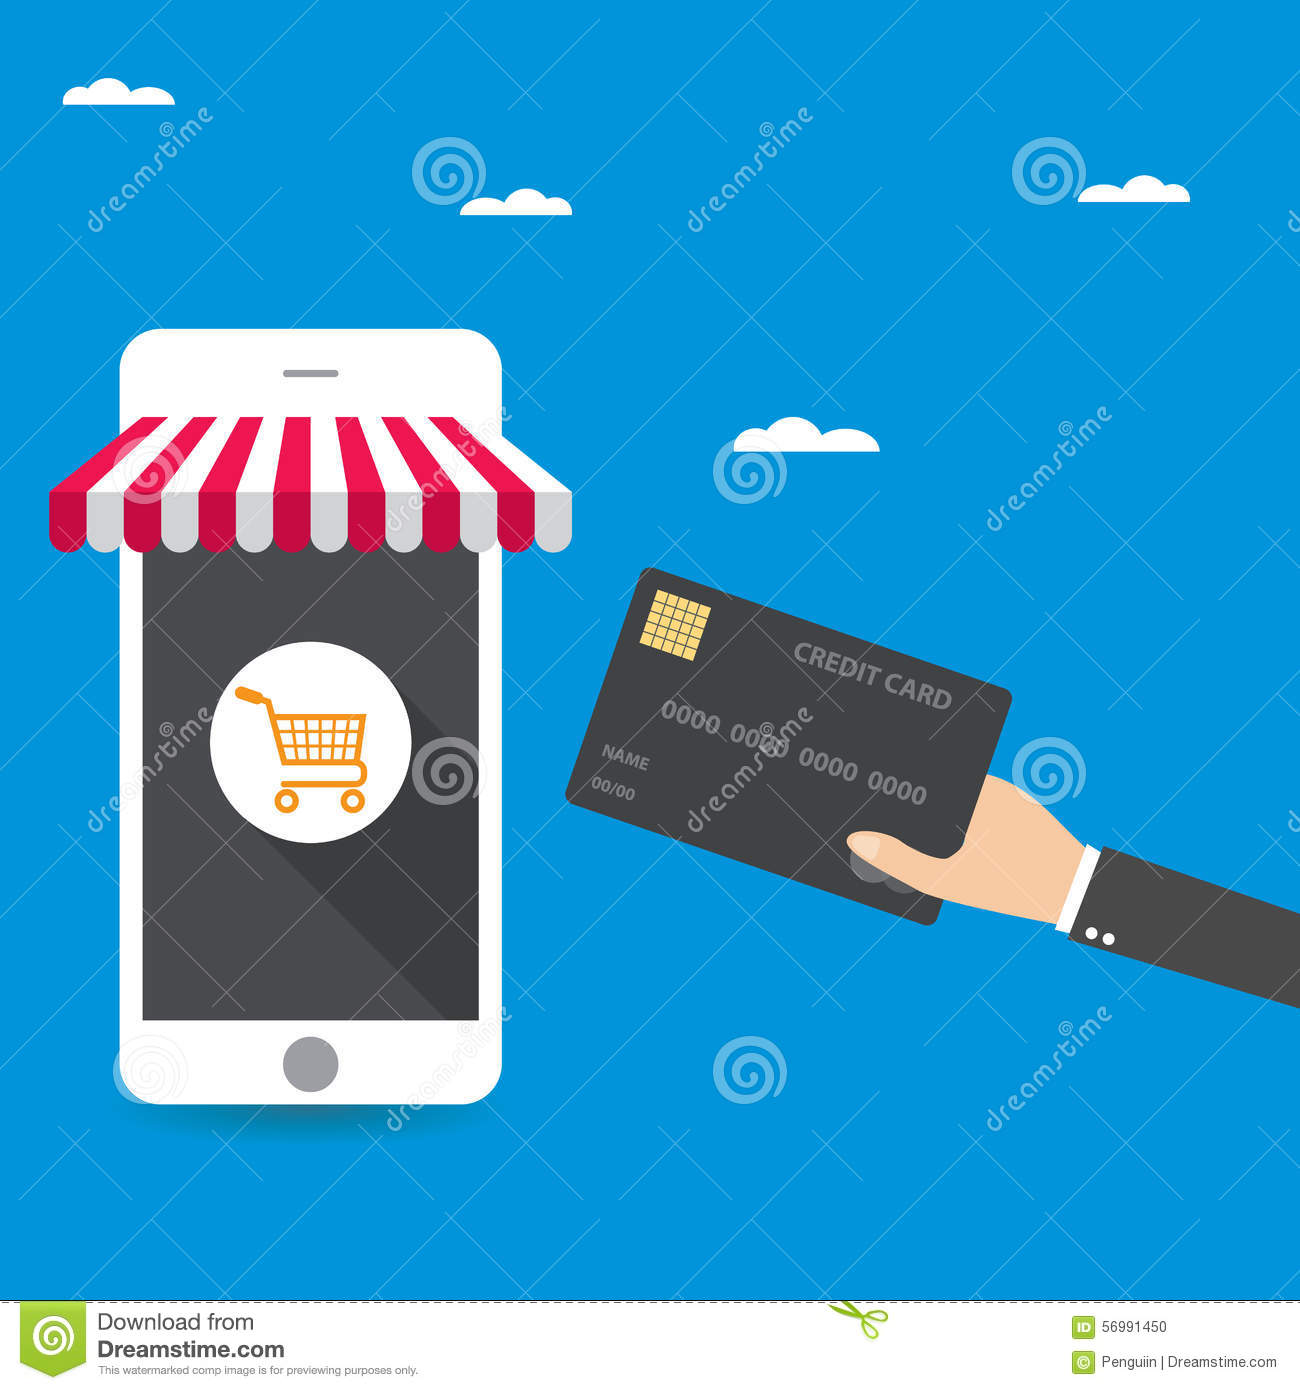 Great How Do I Accept Credit Cards For My Business Gallery ...